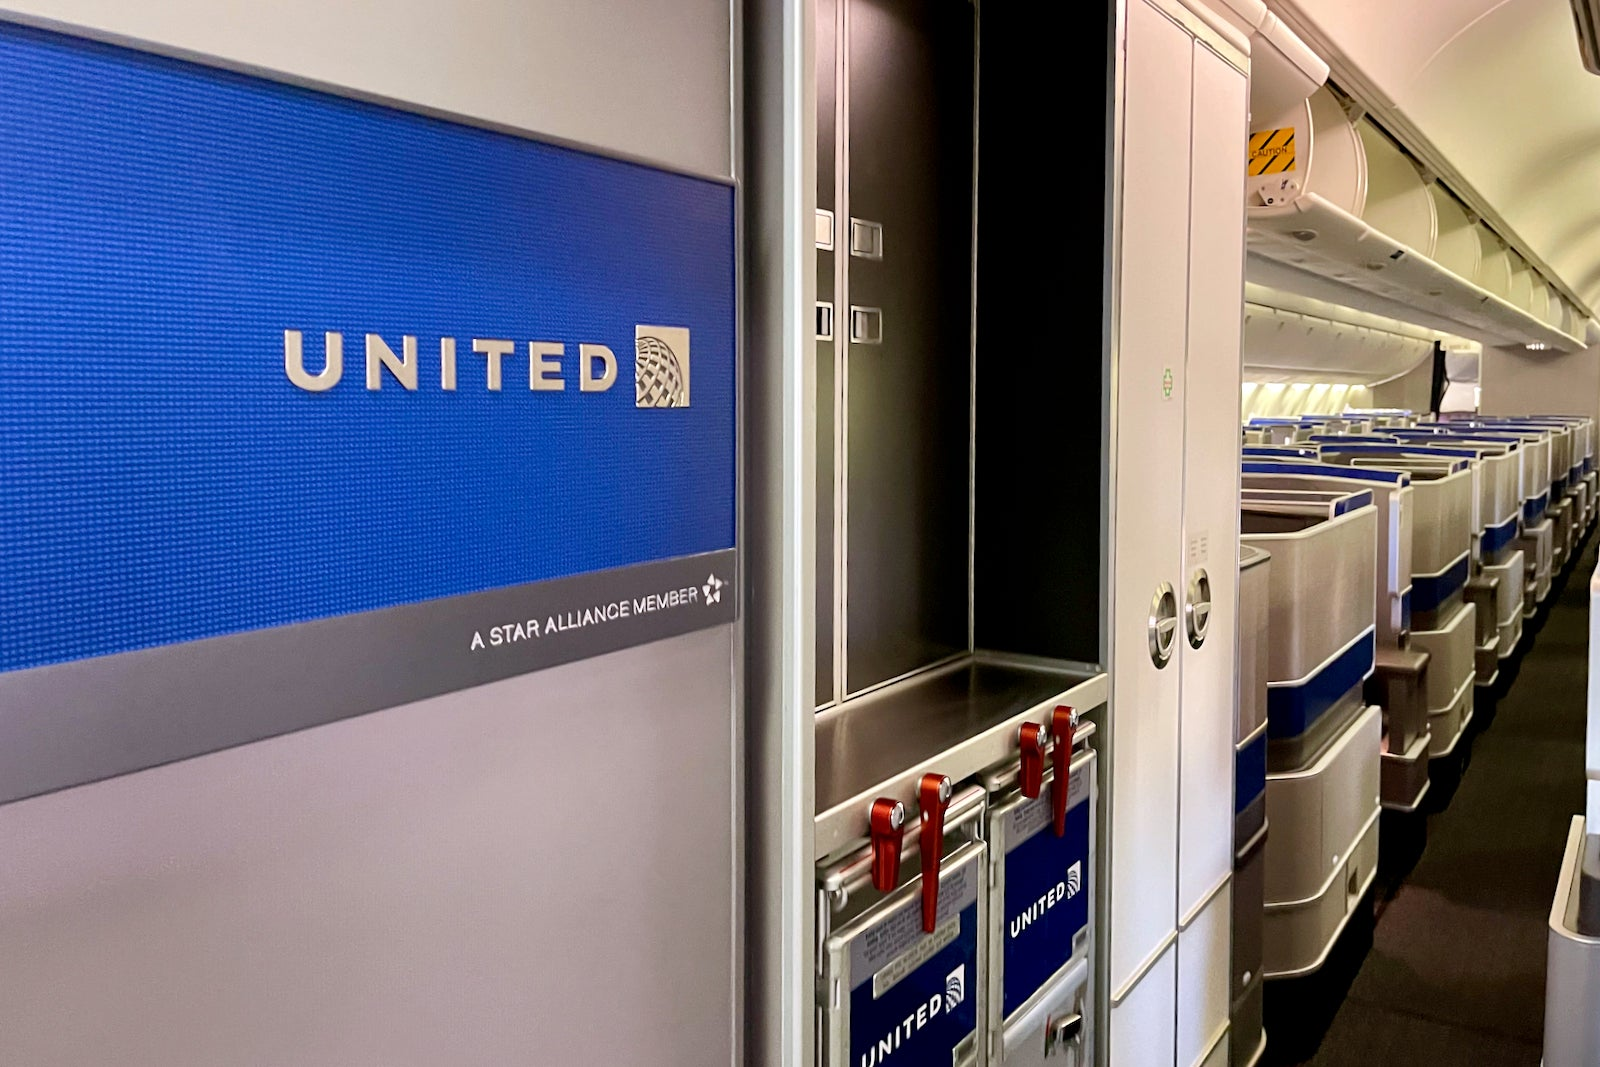 United's 3 new long-haul routes are coming back for another season - The Points Guy